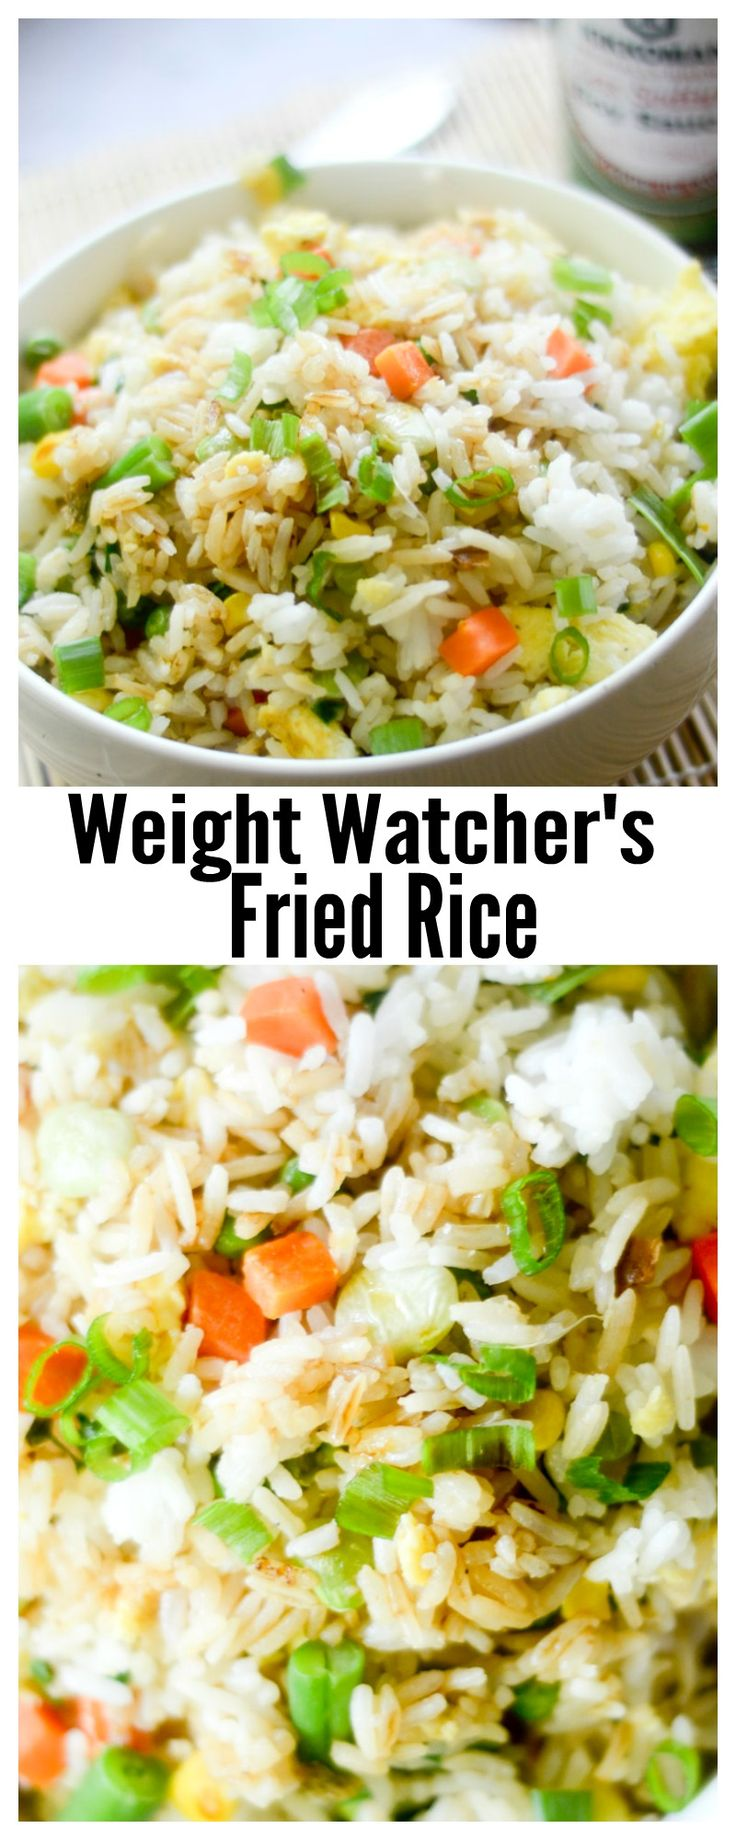 Weight Watcher's Fried Rice - Recipe Diaries #rice